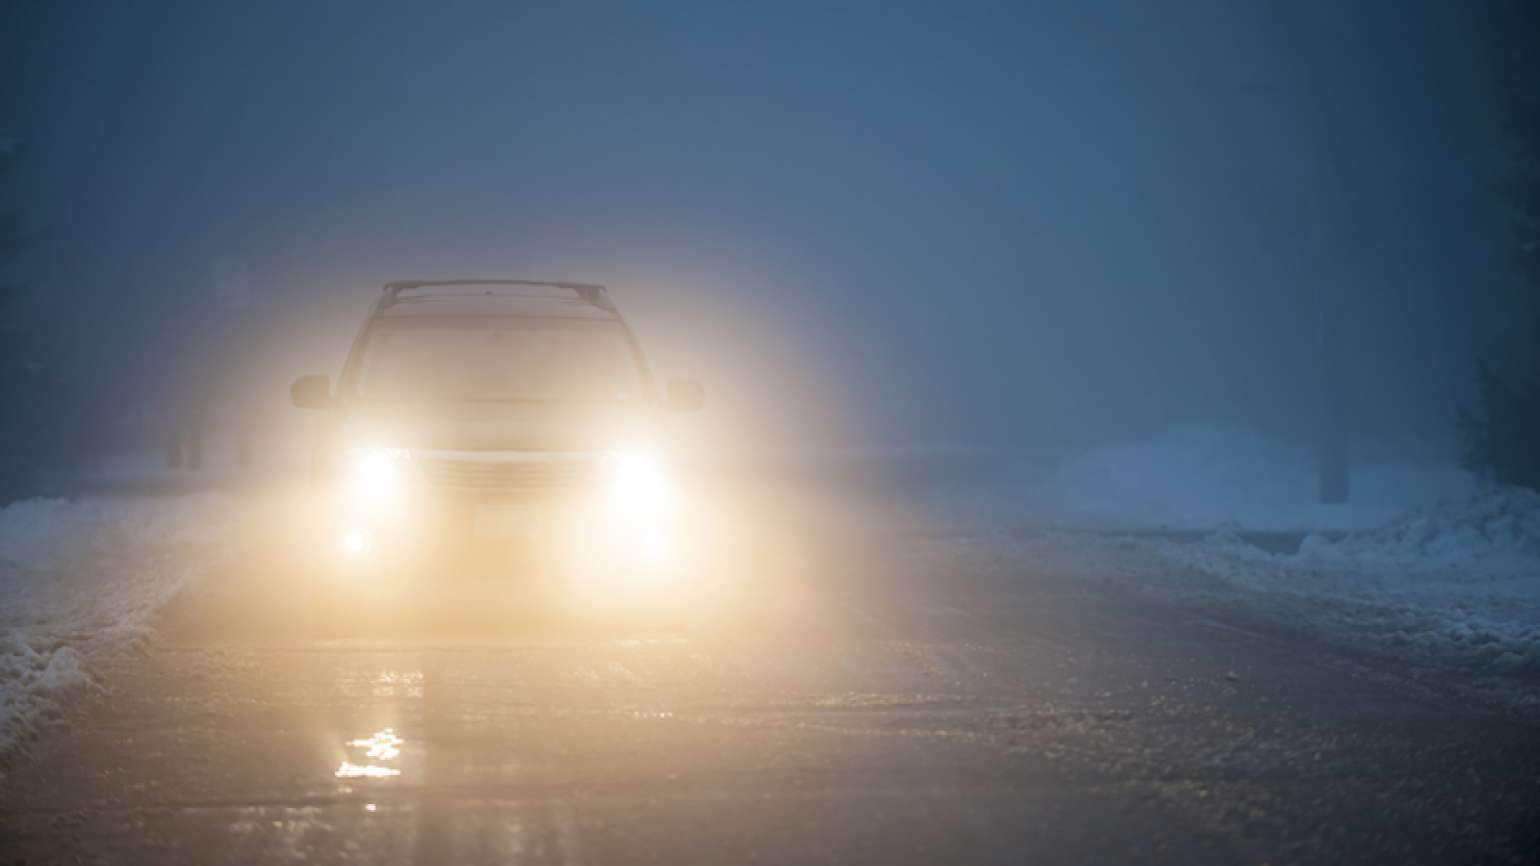 Headlights on a dangerous road. Photo by Elenathewise, Thinkstock.